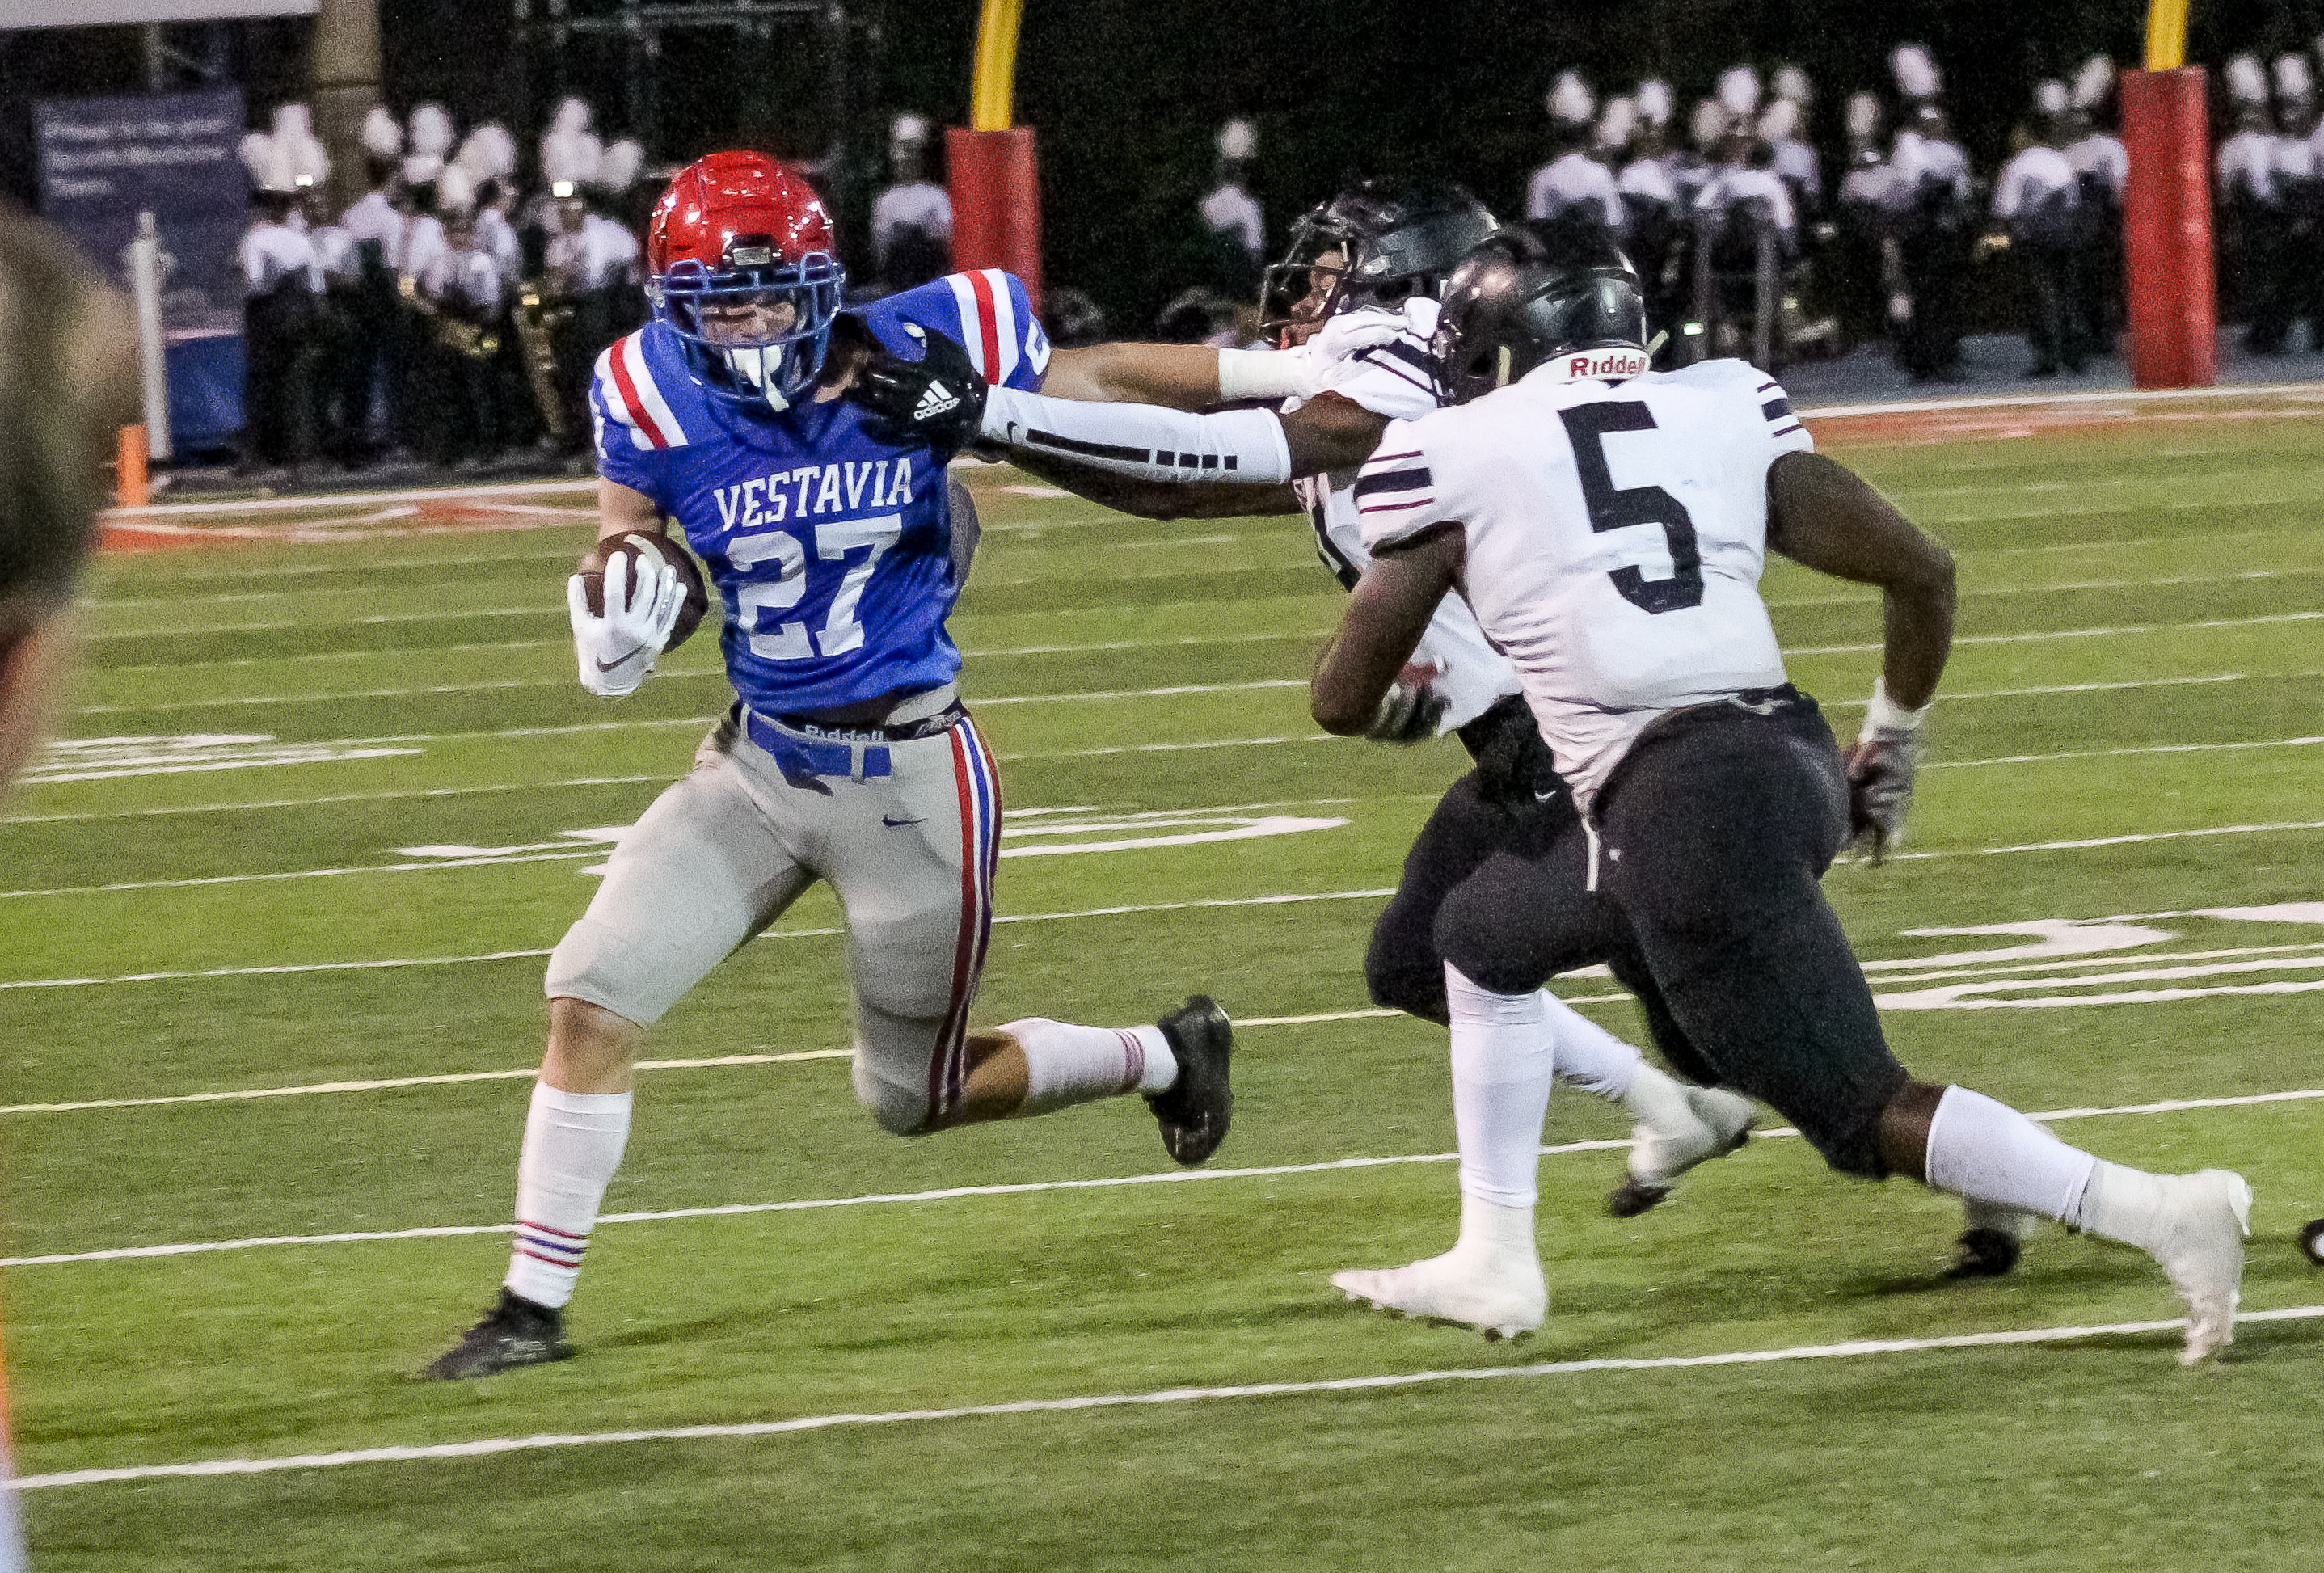 Vestavia WR Robert Brooks